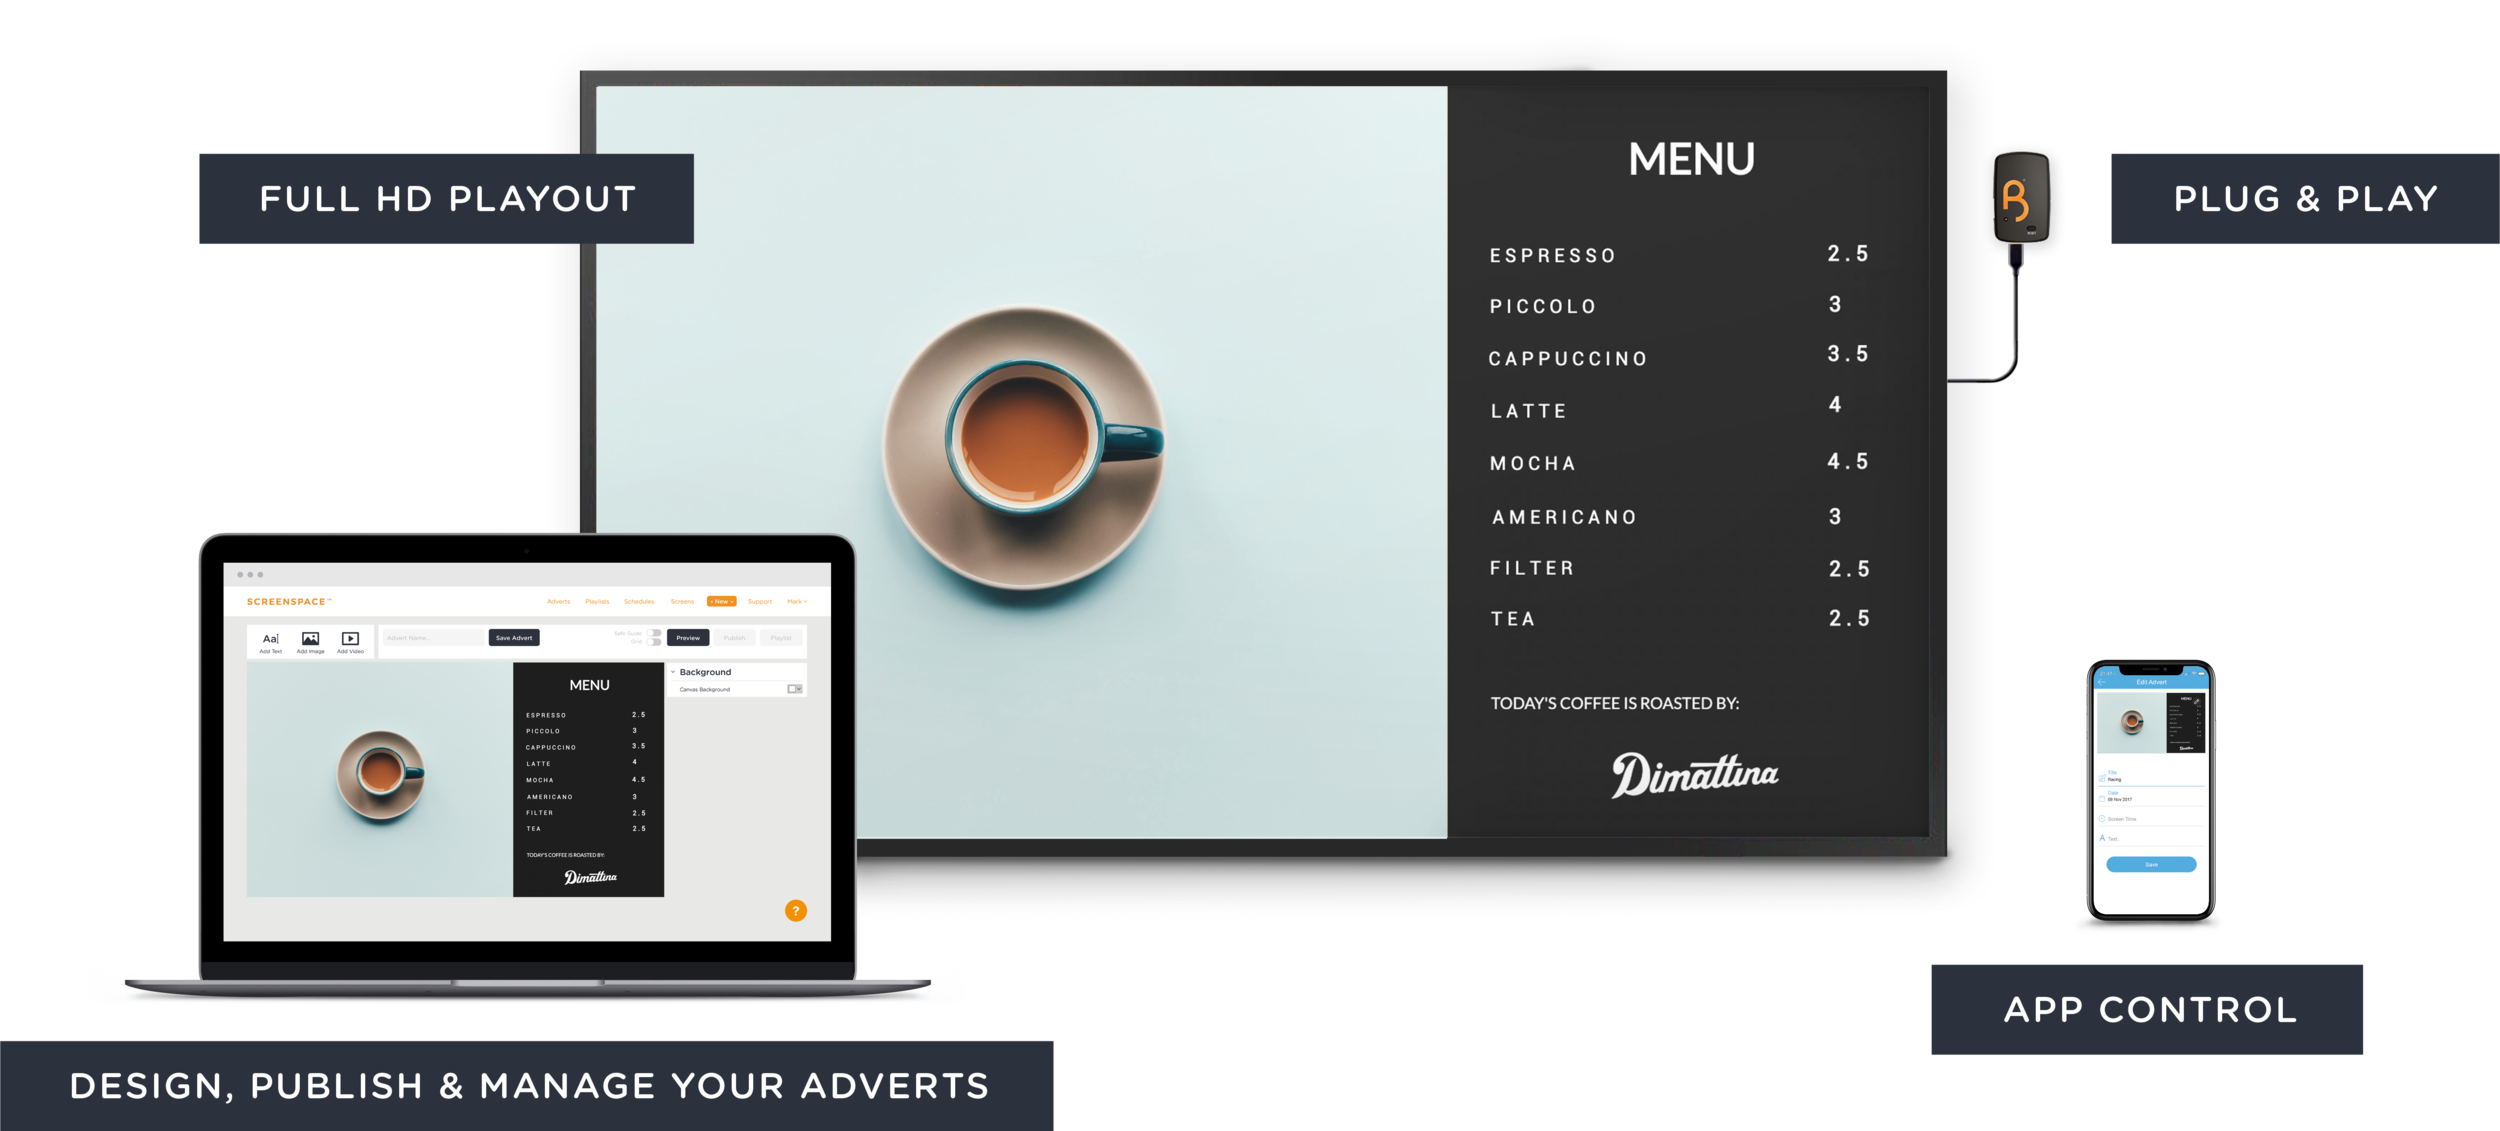 screenspace-mockup_coffee_v2.png